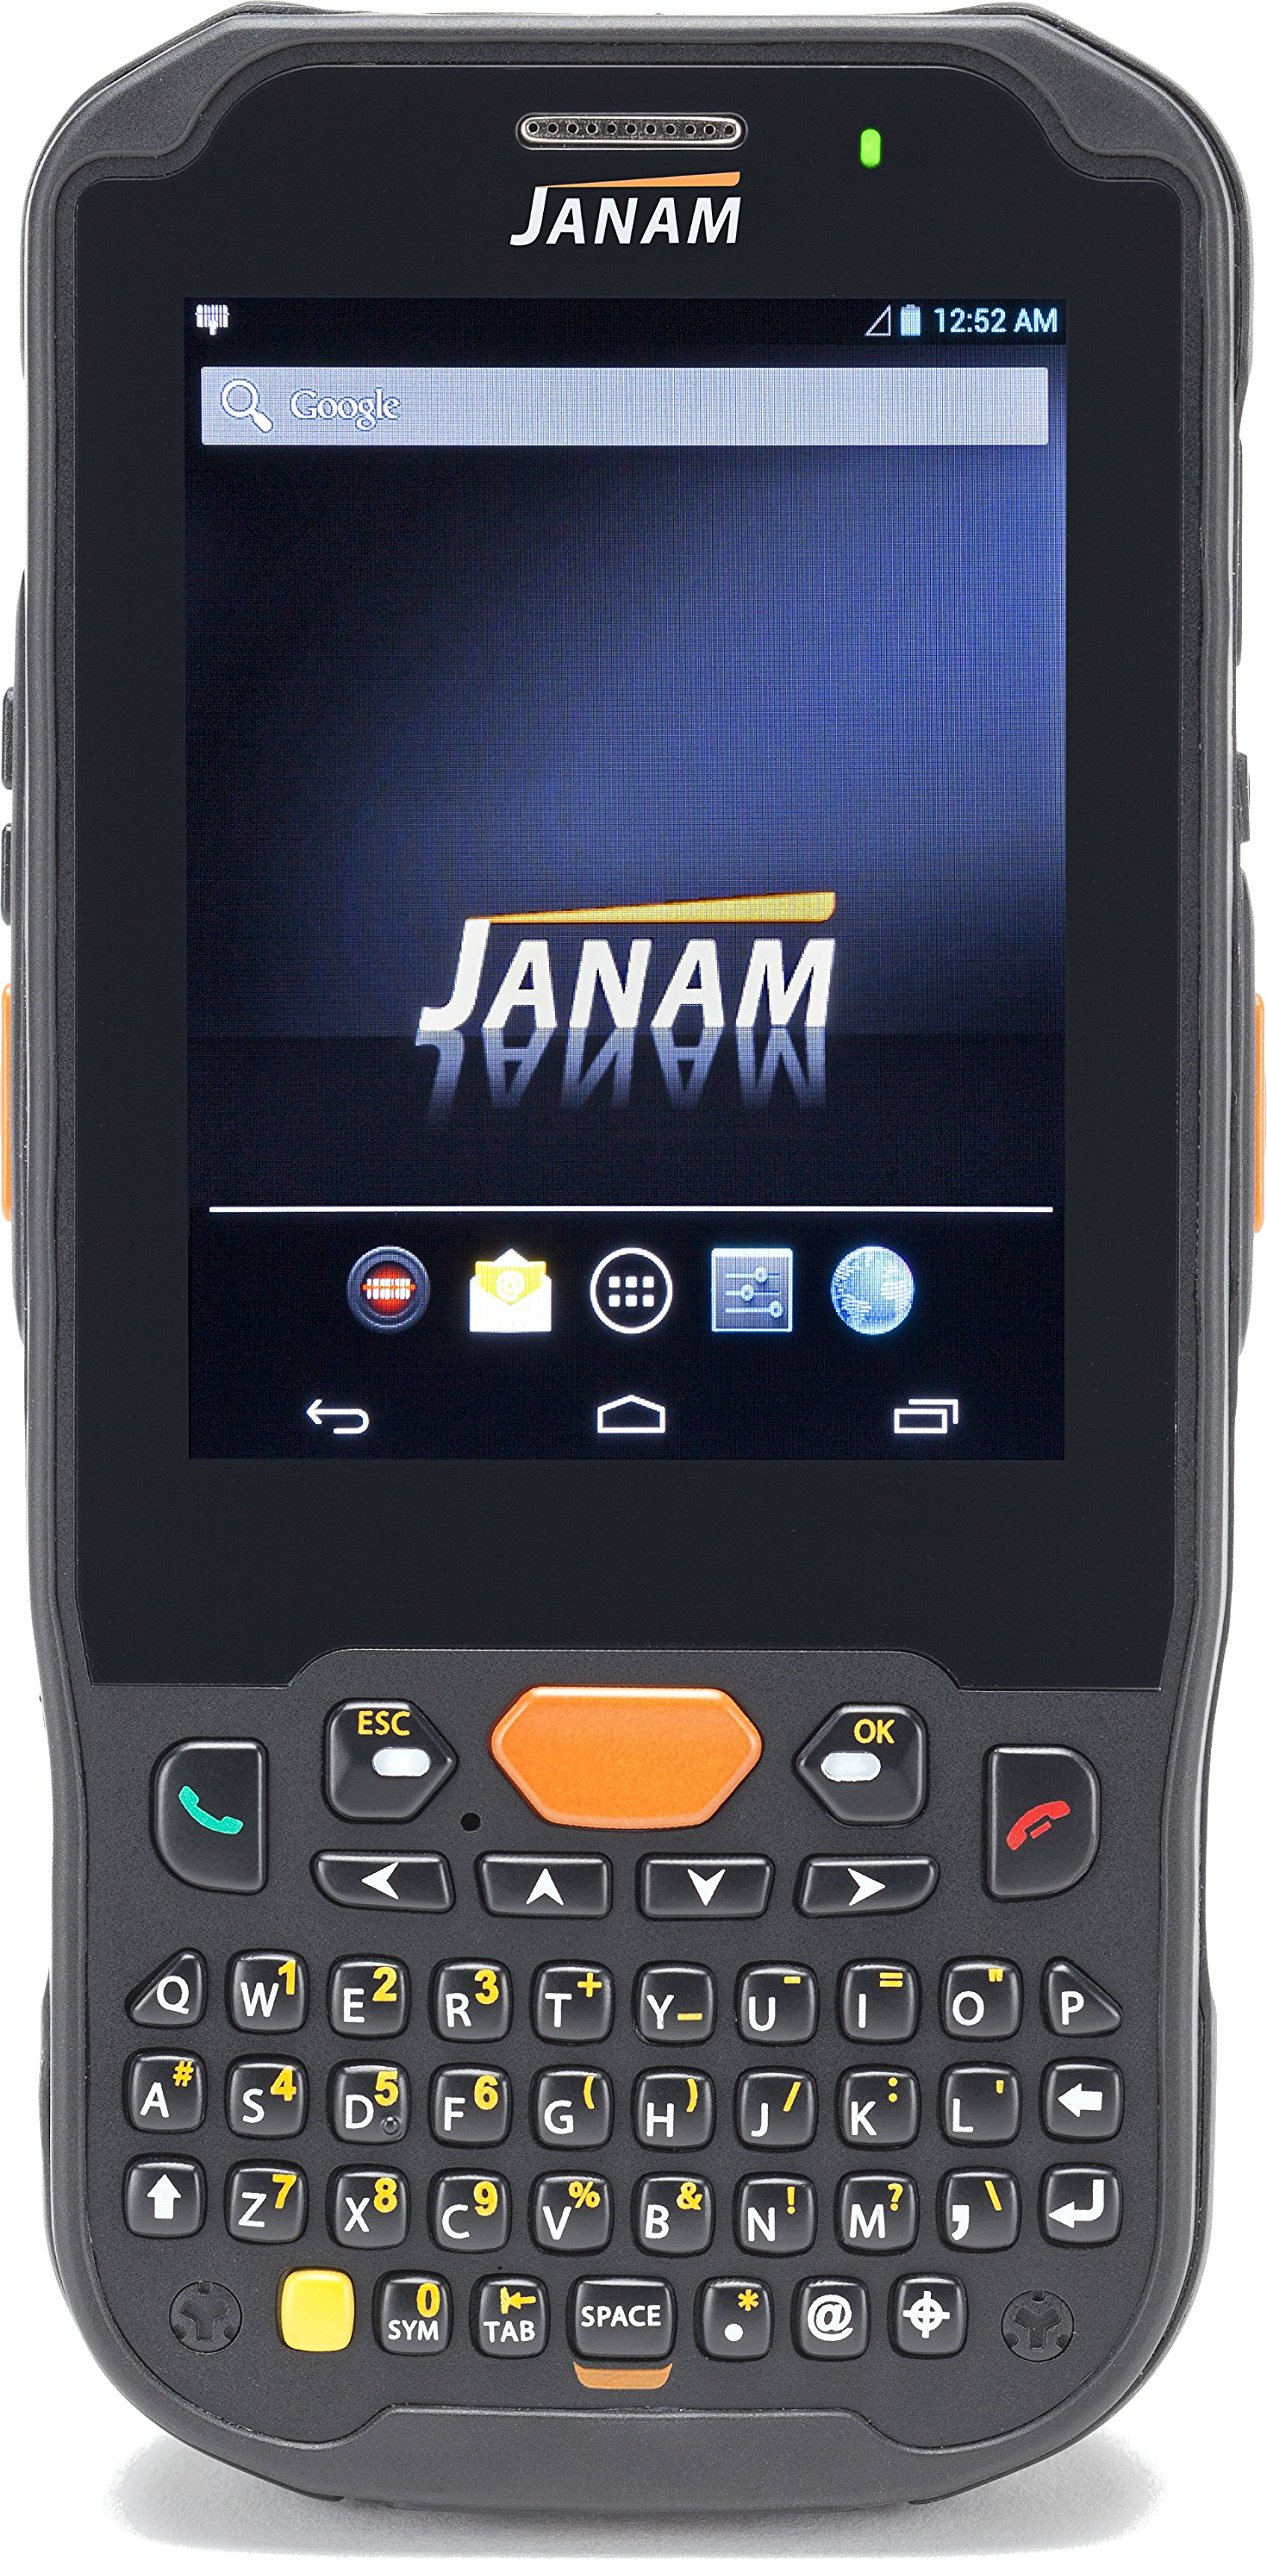 Janam XM5-1QKARDGV00 Series XM5 Handheld Computing Devices, Android JB 4.2, 2D Imager, 802.11ABGN, GPS, HD RFID, Camera, 4000 mAh, Qwerty Keypad by JANAM